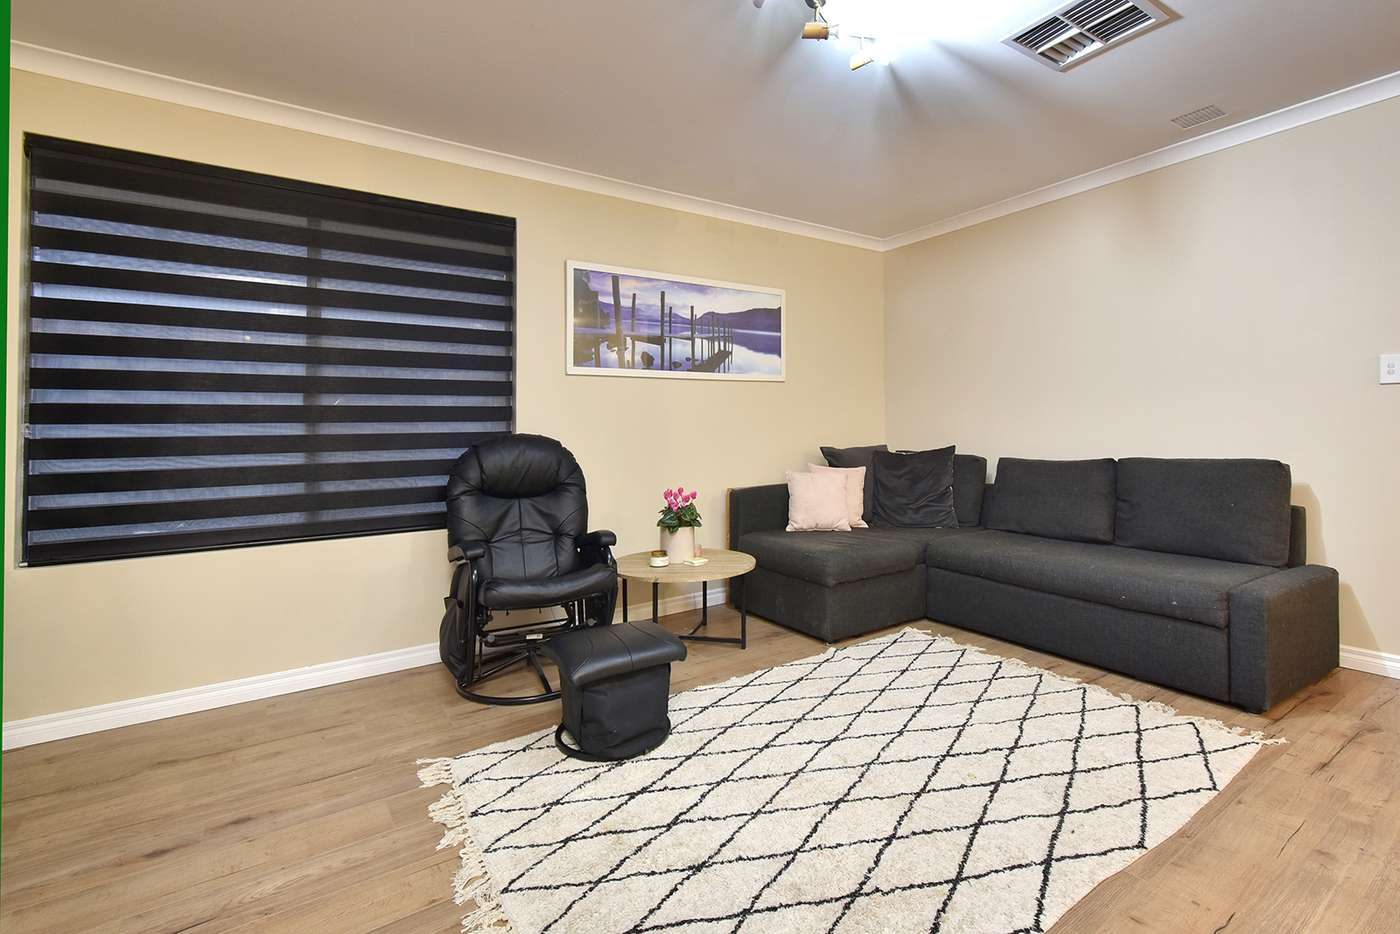 Sixth view of Homely house listing, 55 Norwood Loop, Tapping WA 6065